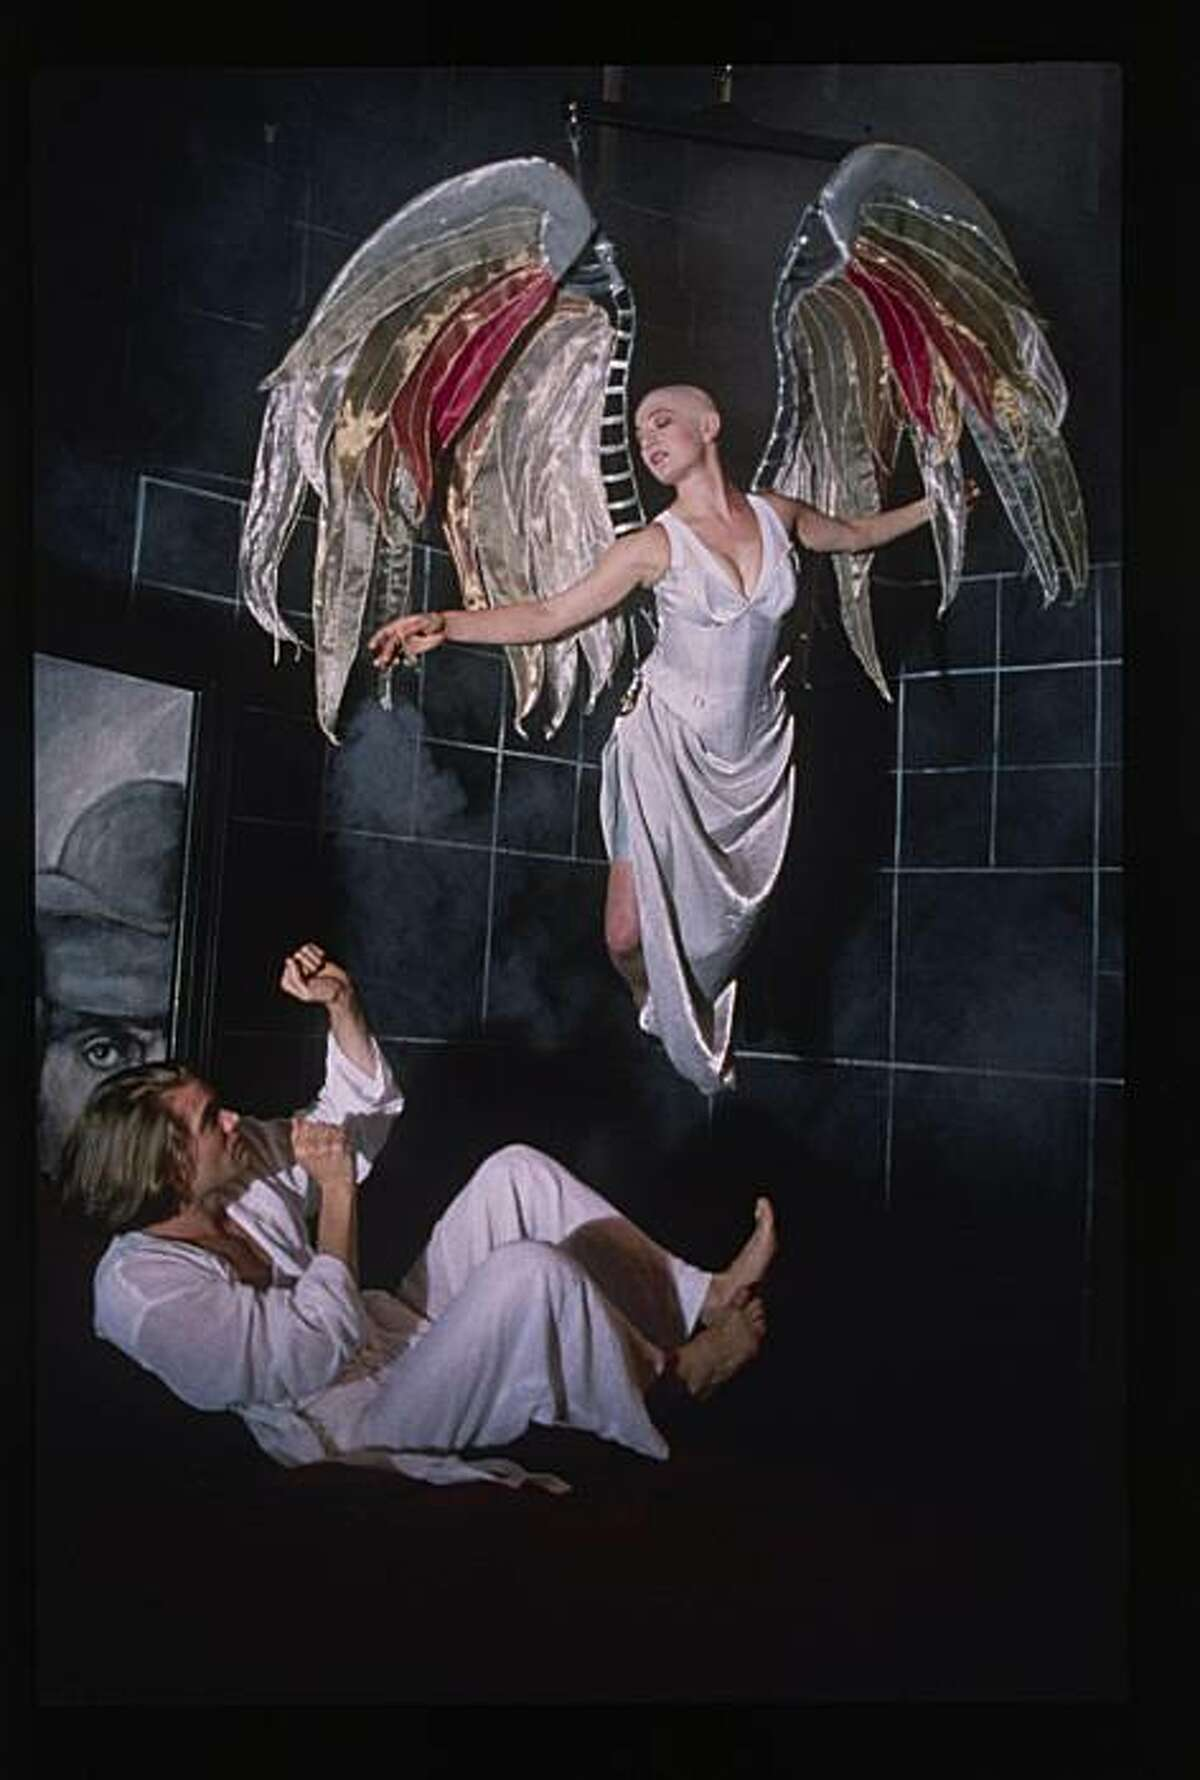 The Angel (Lise Bruneau) appears to Prior (Garret Dillahunt) in Angels in America, American Conservatory Theater, San Francisco, 1994. Credit: Ken Friedman/American Conservatory Theater